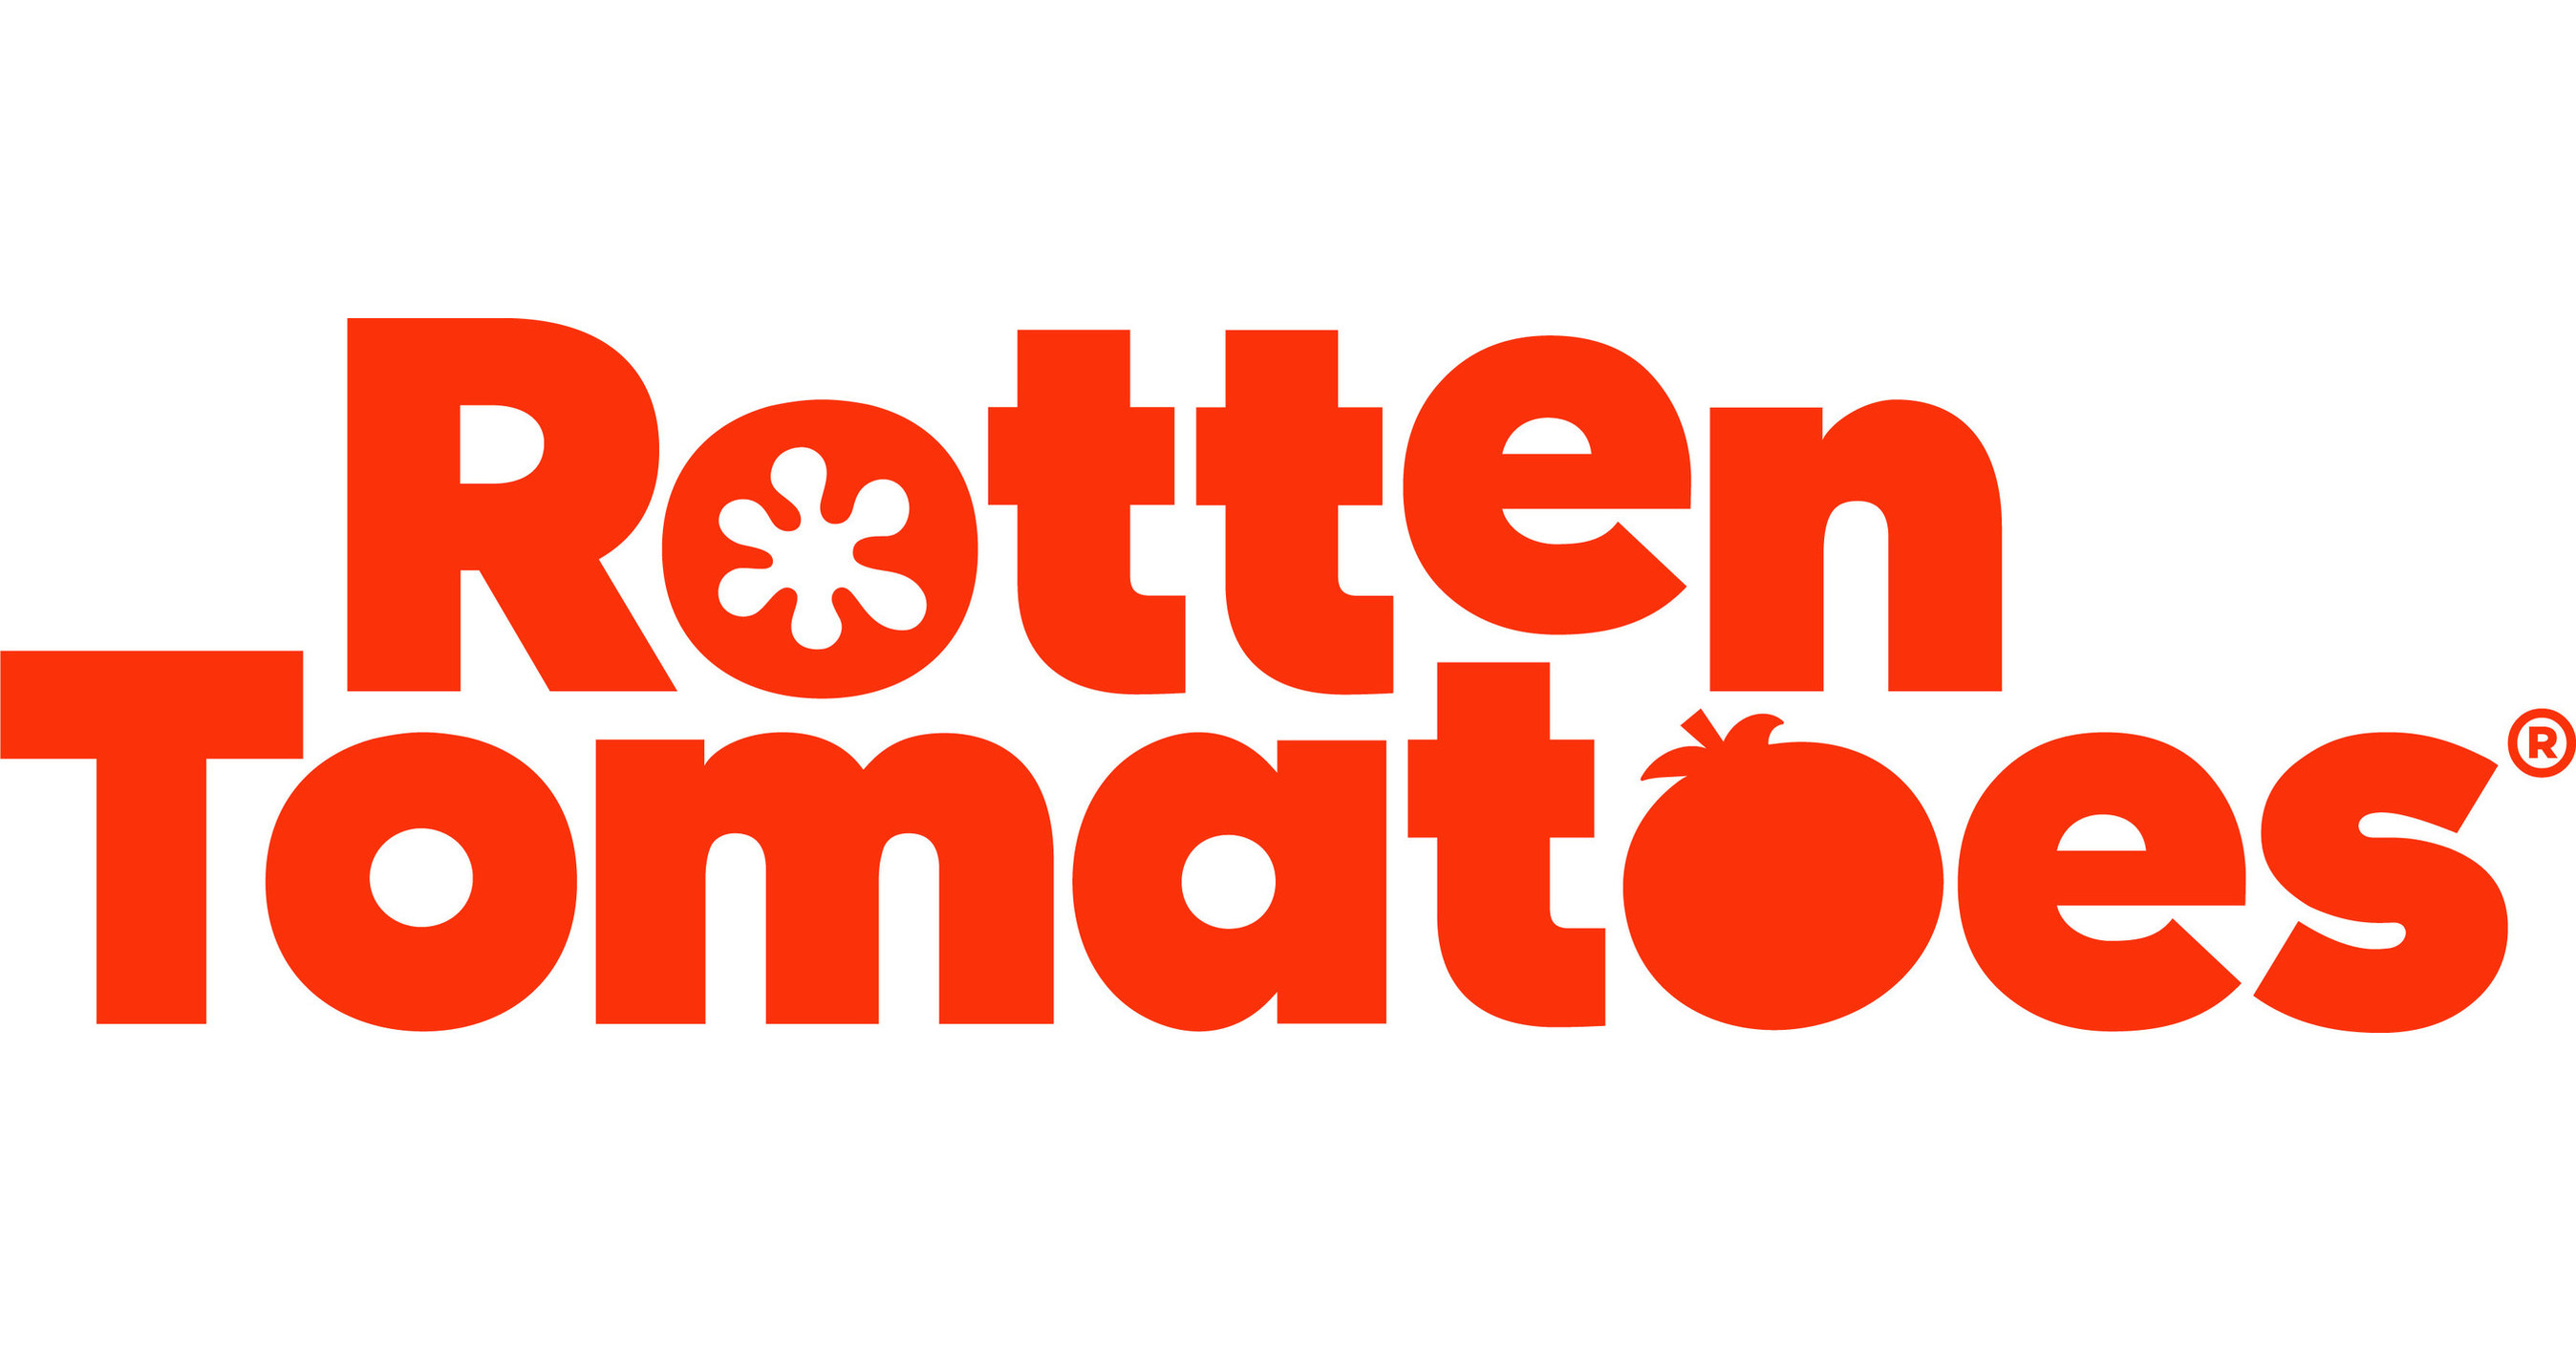 ROTTEN TOMATOES REVAMPS CRITICS CRITERIA FOR ITS TOMATOMETER RATING WITH A FOCUS ON INCREASING INCLUSION AMONG CRITICS AND NEW MEDIA PLATFORMS